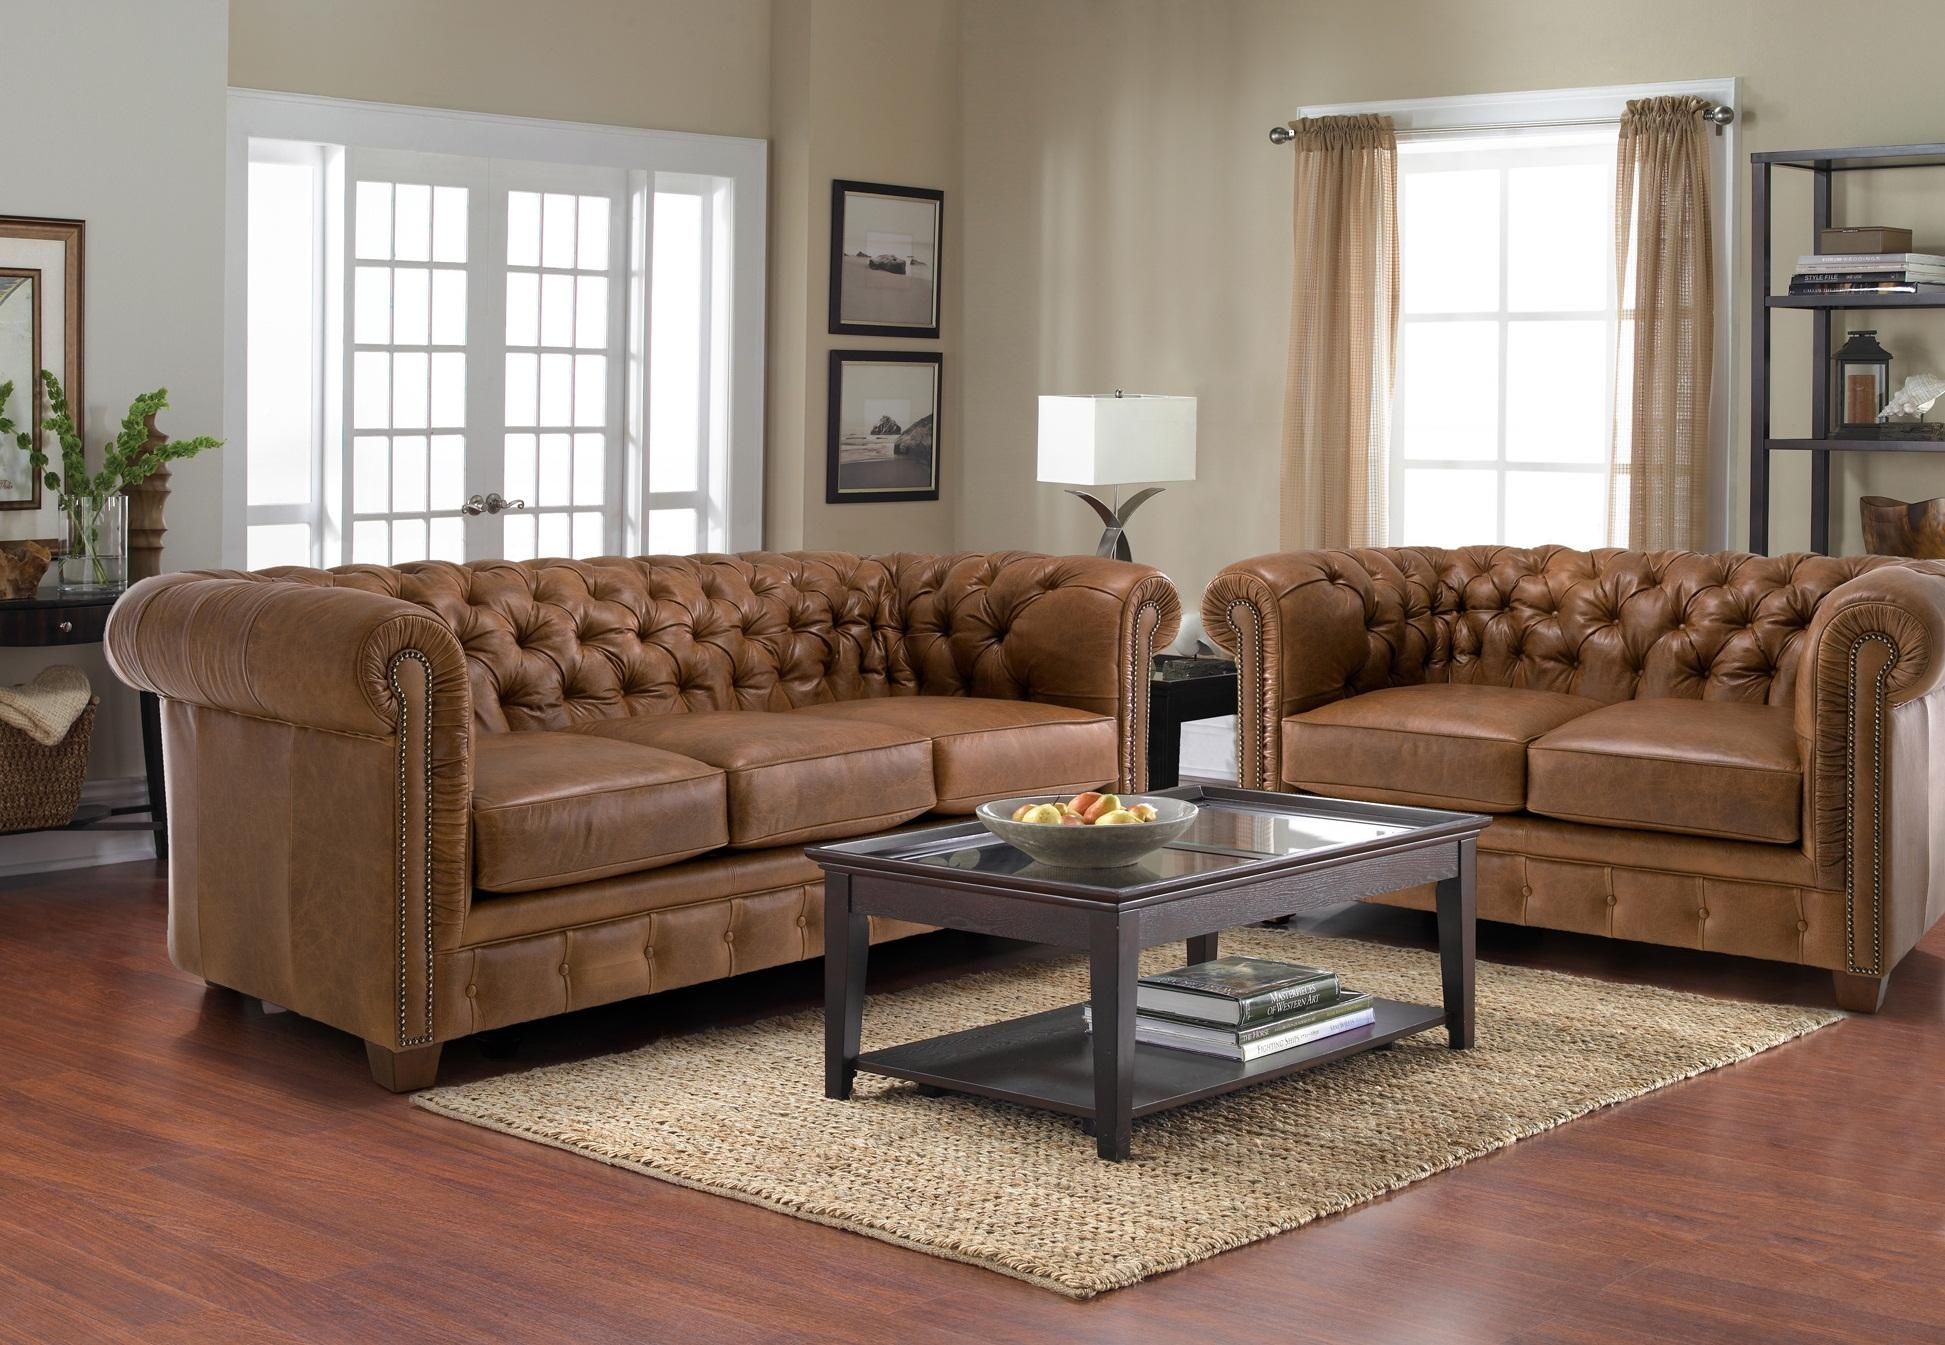 Old And Vintage Brown Leather Tufted Sofa With 2 And 3 Cushions In Inside Brown Leather Tufted Sofas (View 16 of 20)